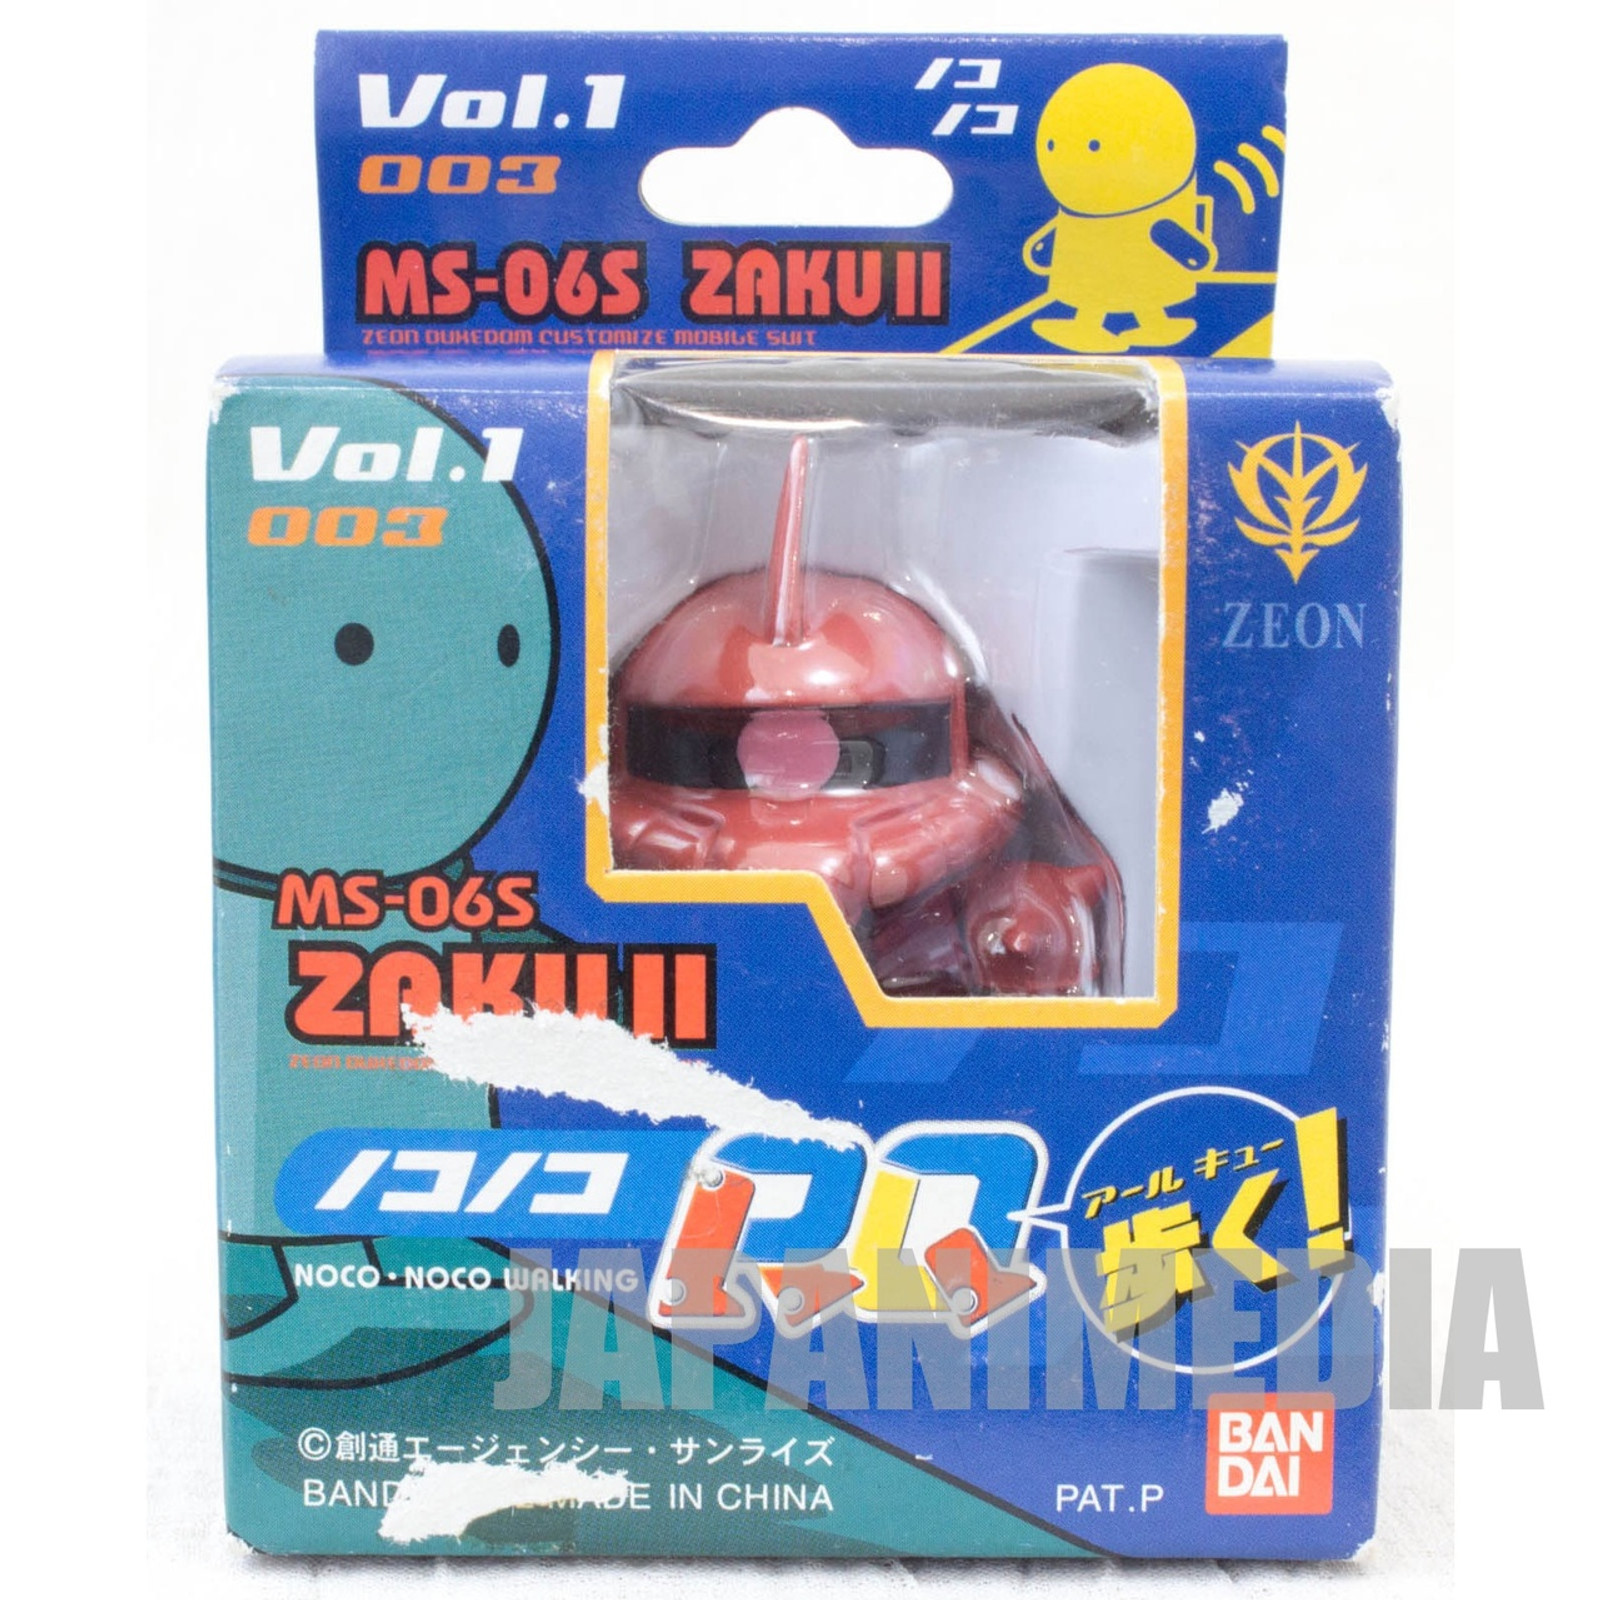 Gundam MS-065 ZAKU II noko noko RQ Wind-up Action Mini Figure Char Aznable Bandai JAPAN ANIME